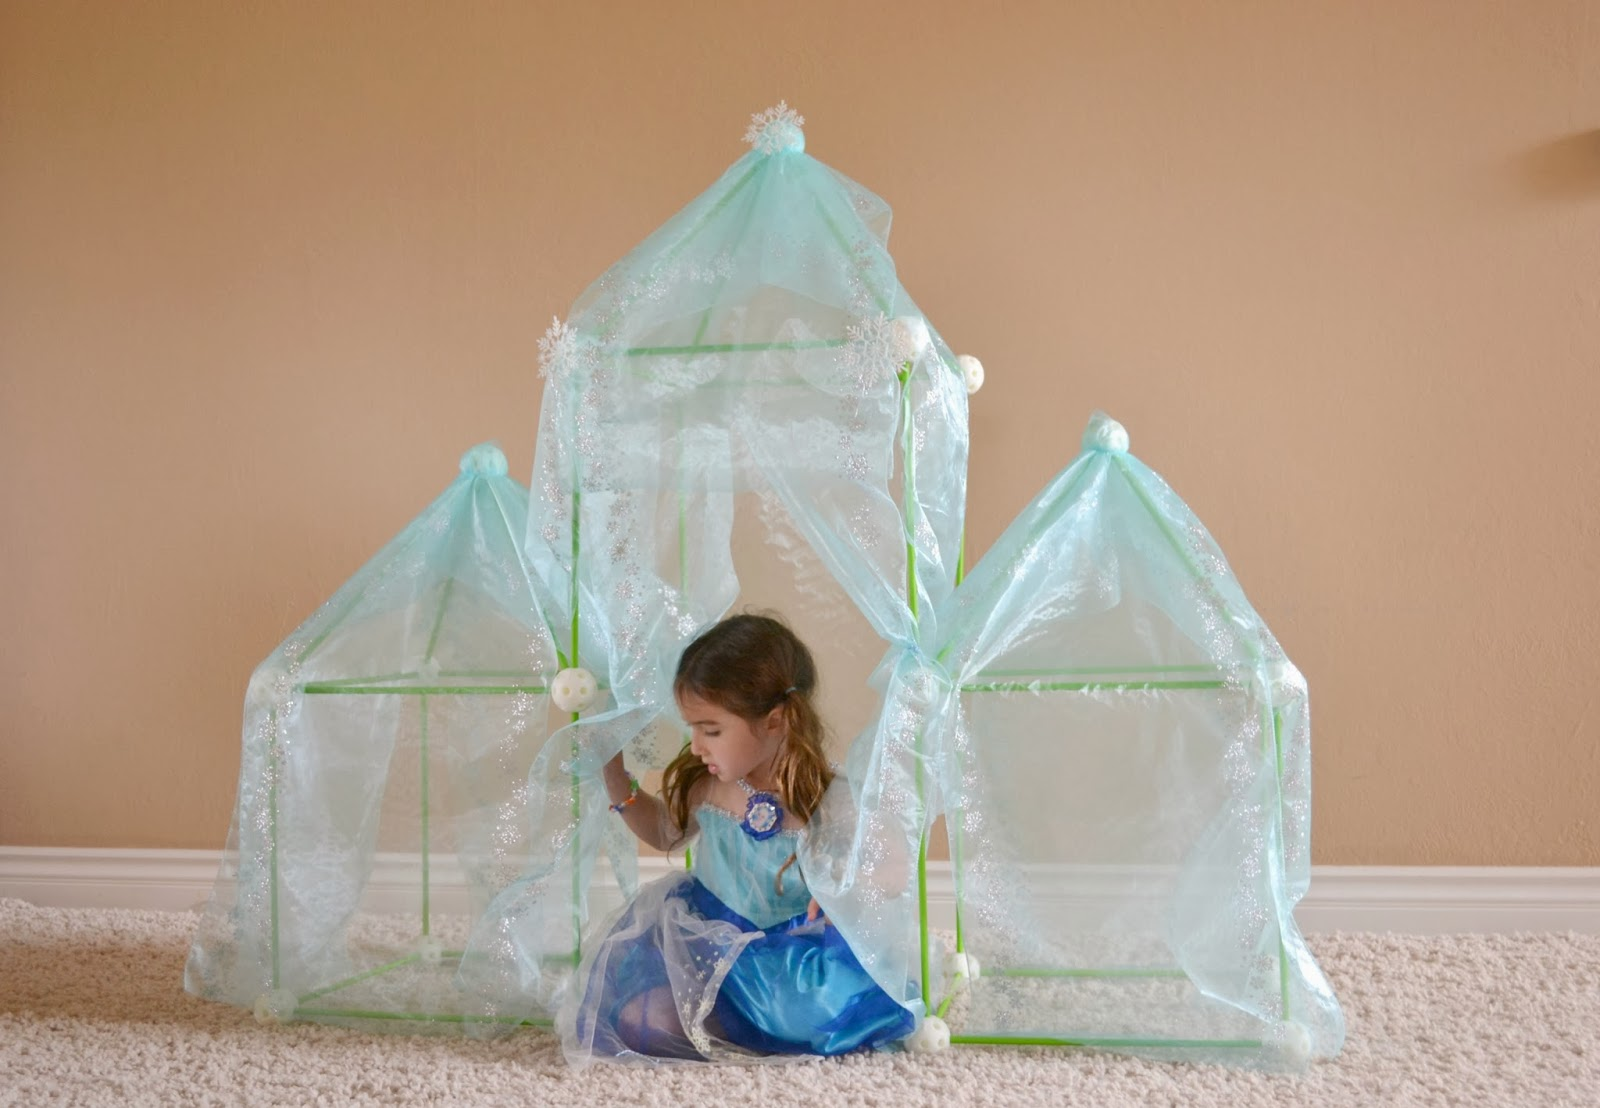 Mommy Testers, Disney Frozen Ice Palace, DIY FROZEN Ice Castle, DIY Frozen Ice Palace, DIY Disney Frozen Castle, How to make an ice palace fort